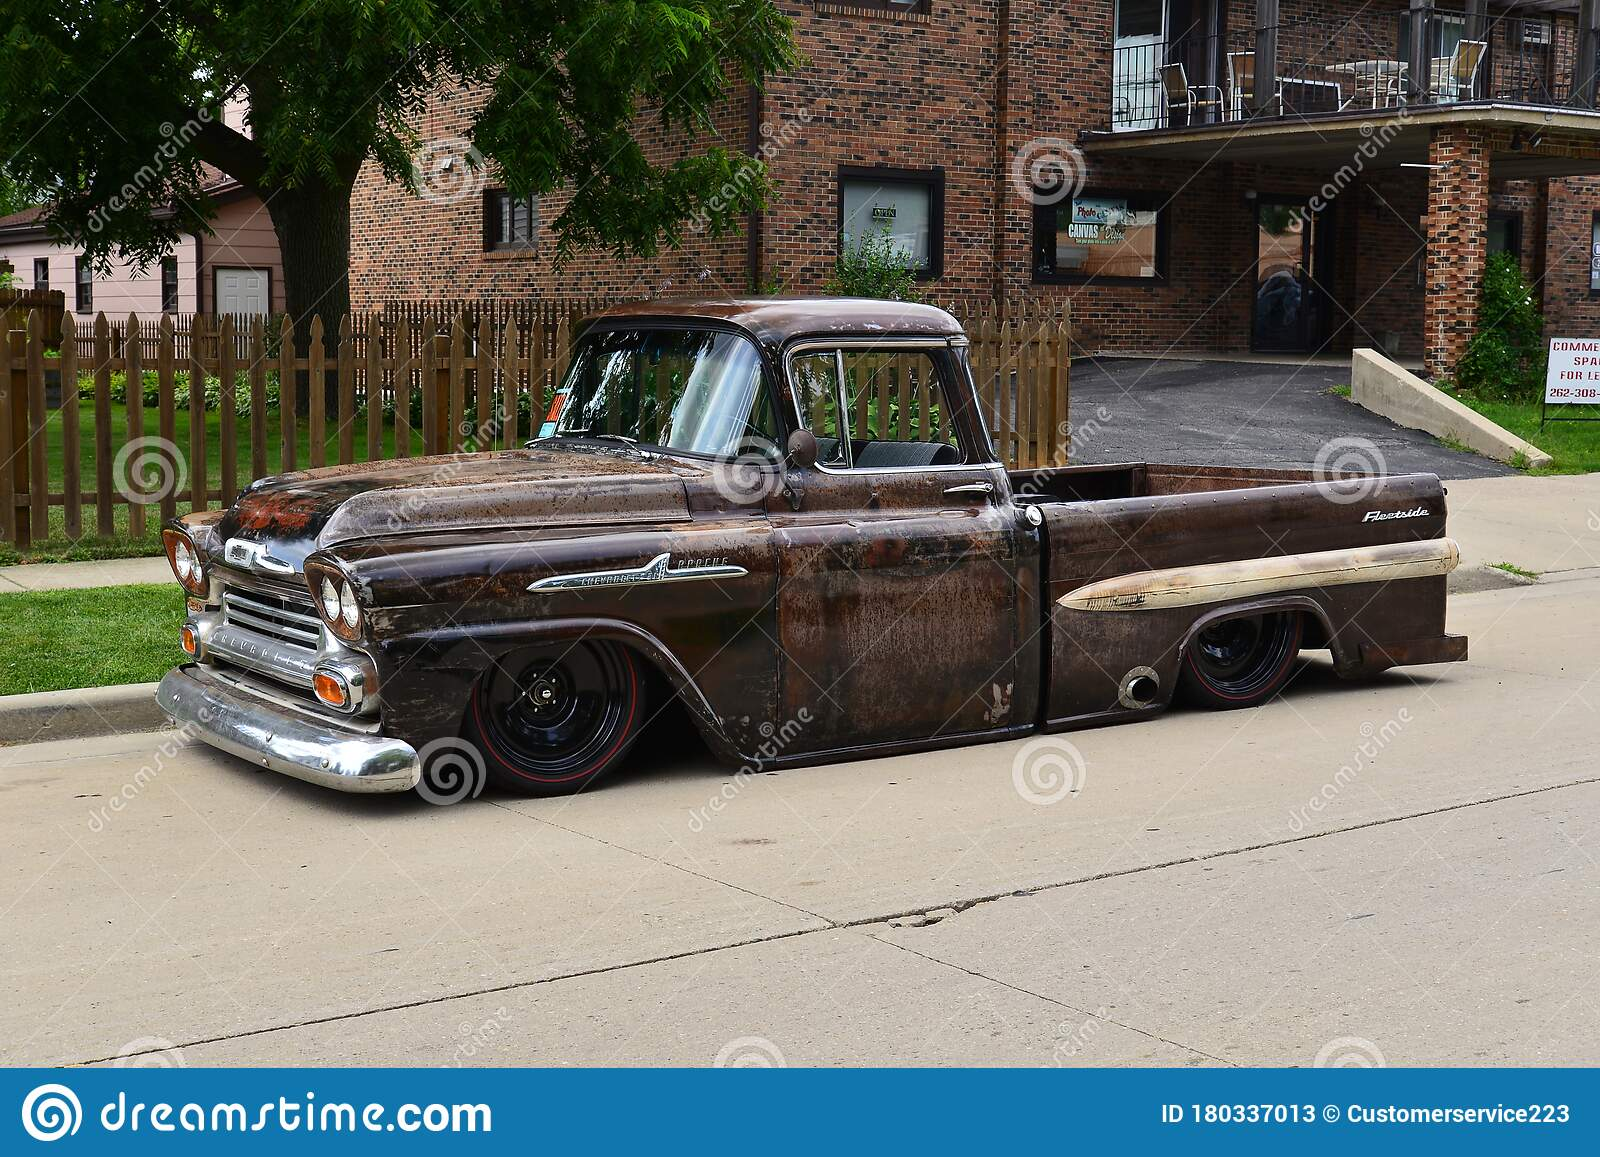 Totally Customized 1958 Chevy 3100 Apache Truck With Patina Editorial Stock Photo Image Of Custom Allowing 180337013